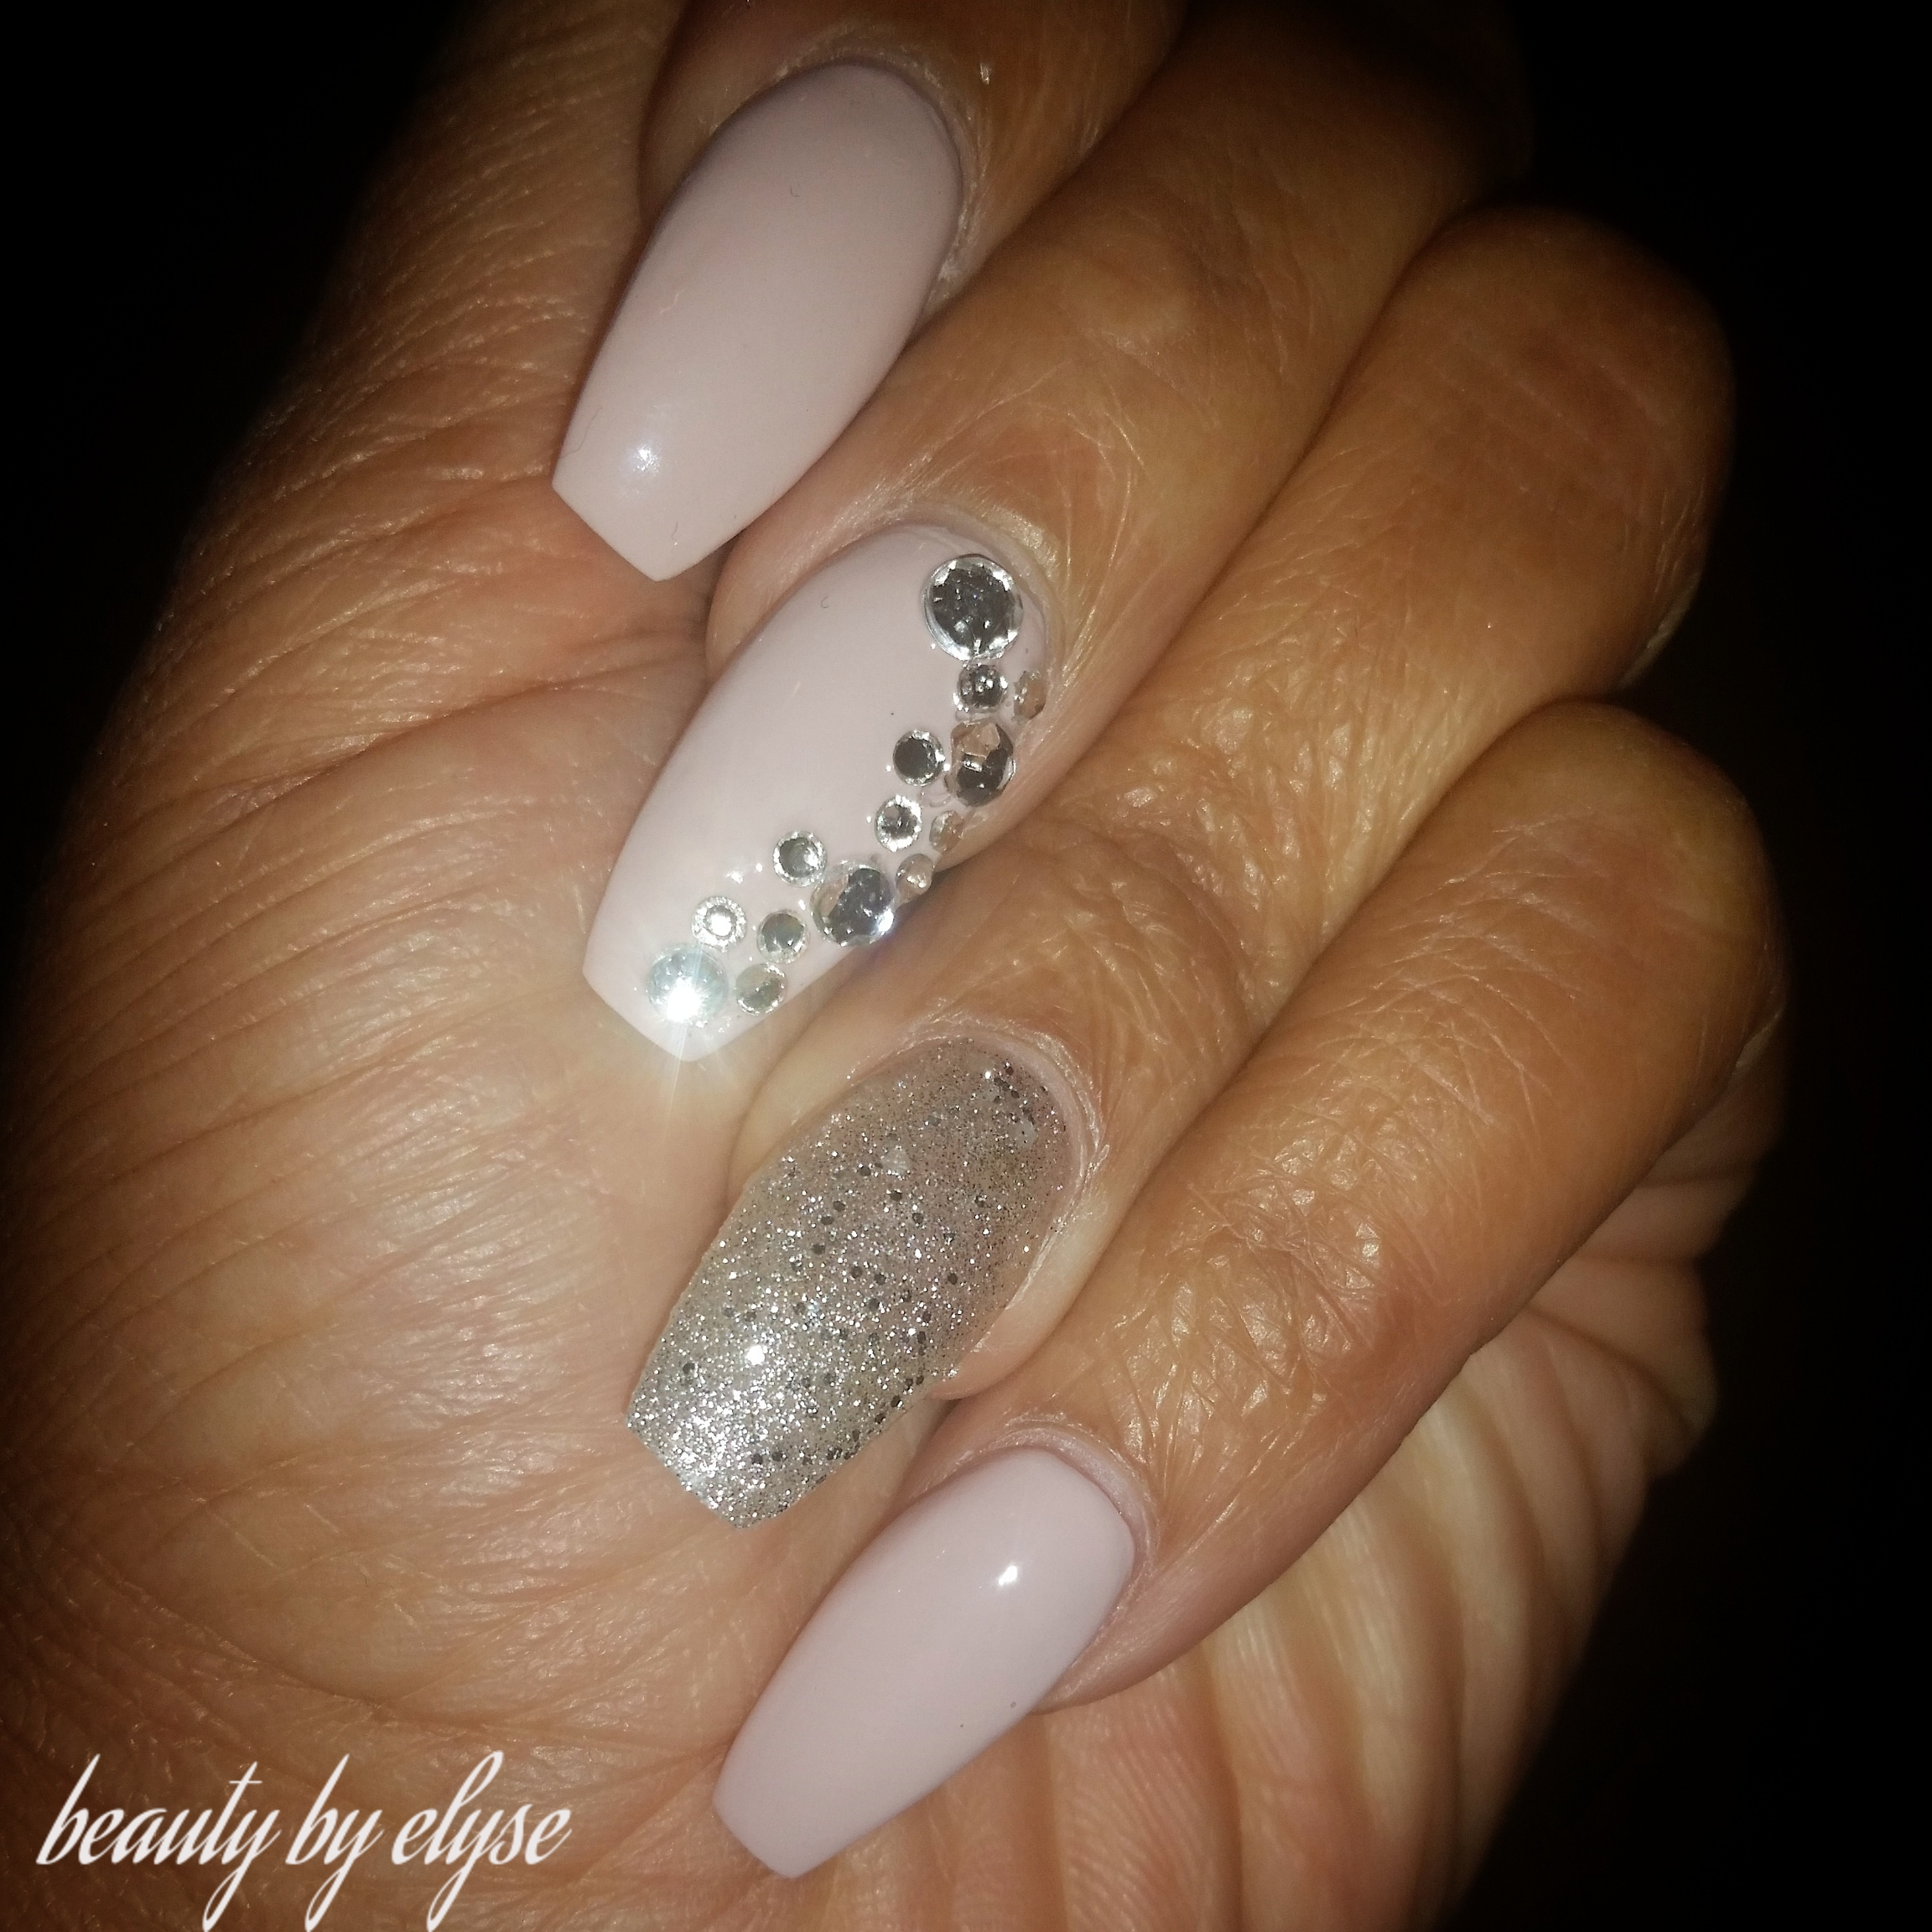 Express yourself! Nail designs – Beauty By Elyse